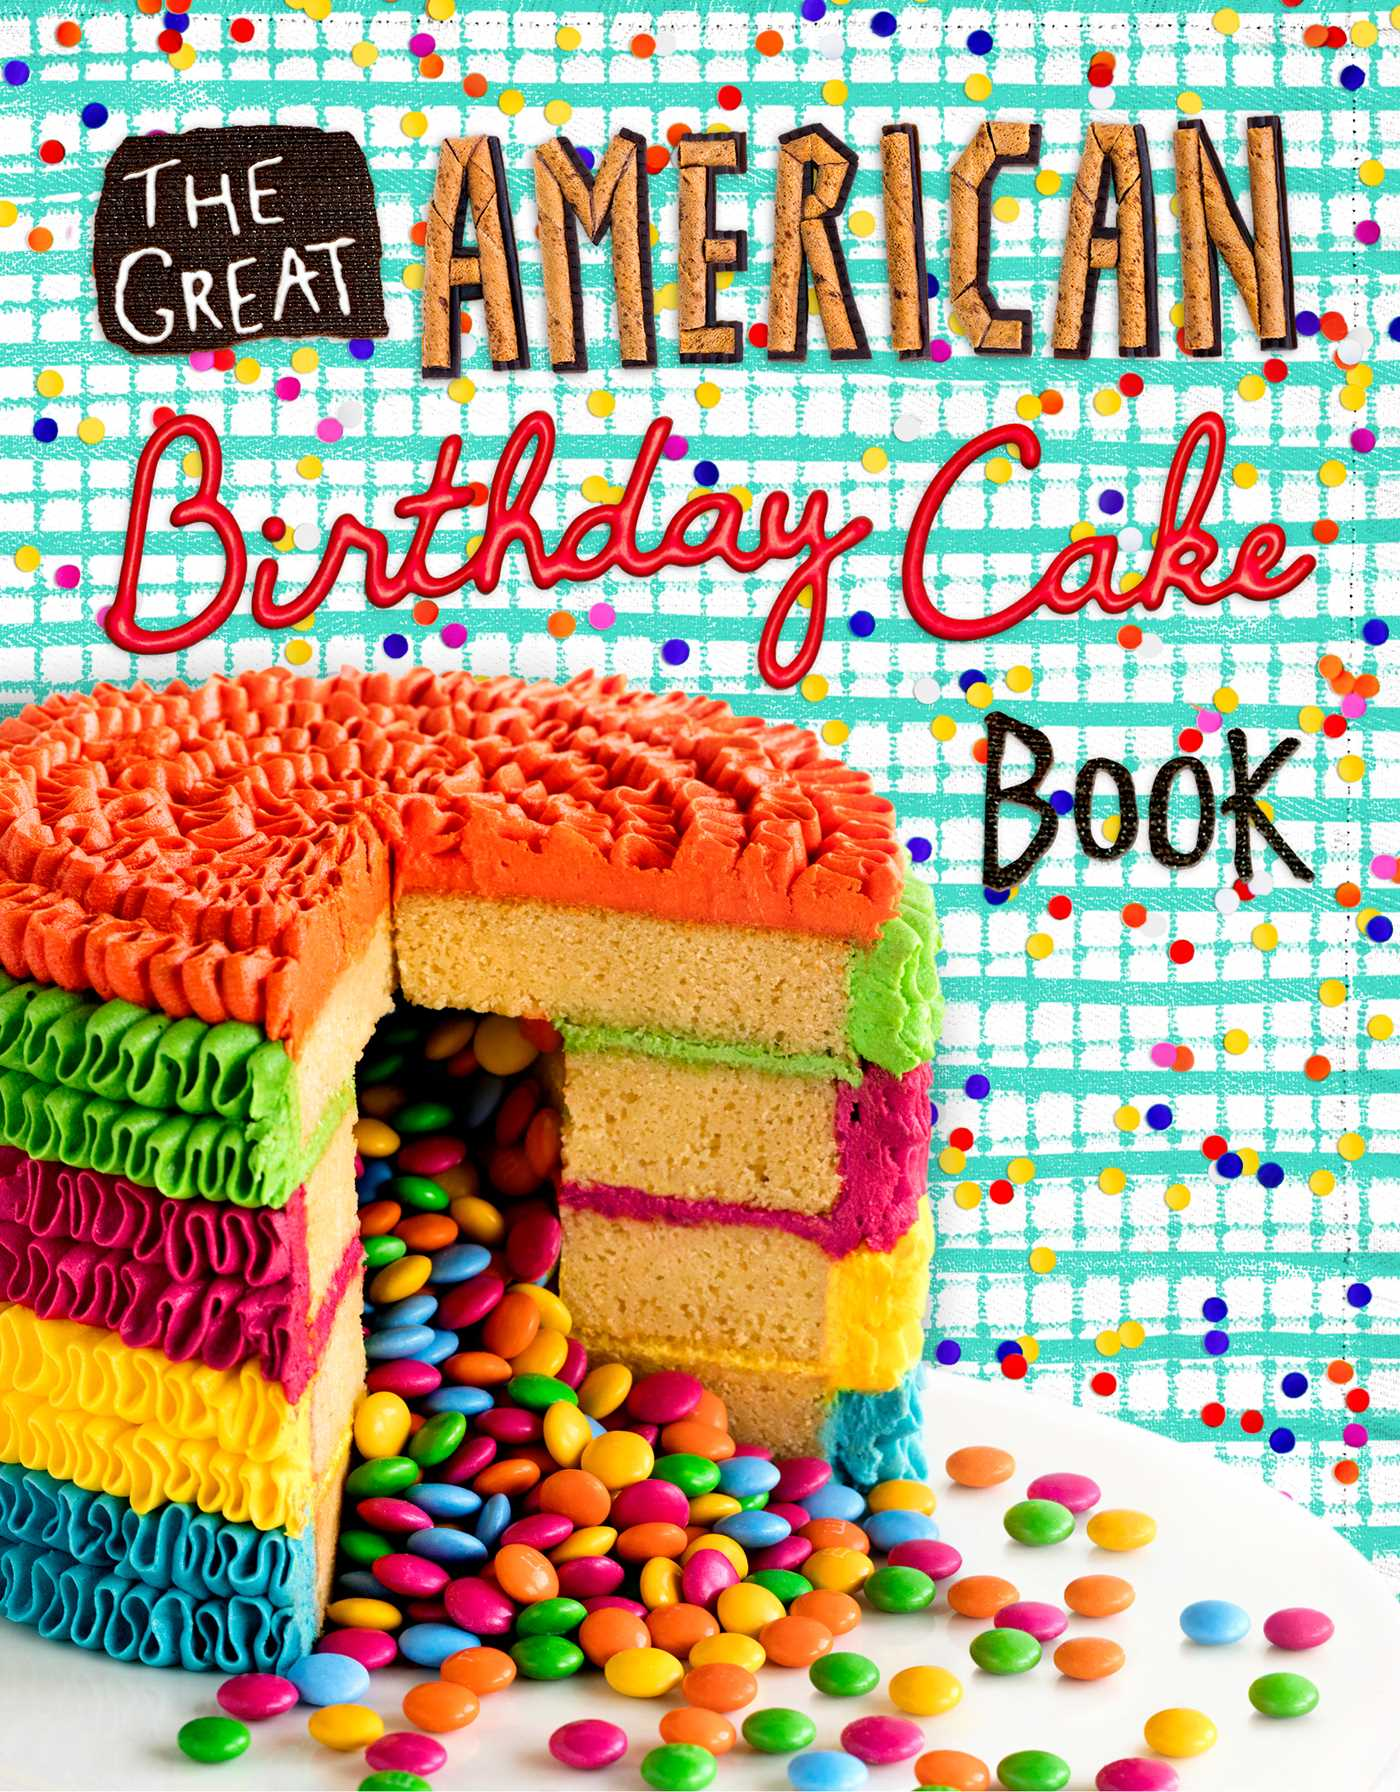 The great american birthday cake book 9781681882390 hr